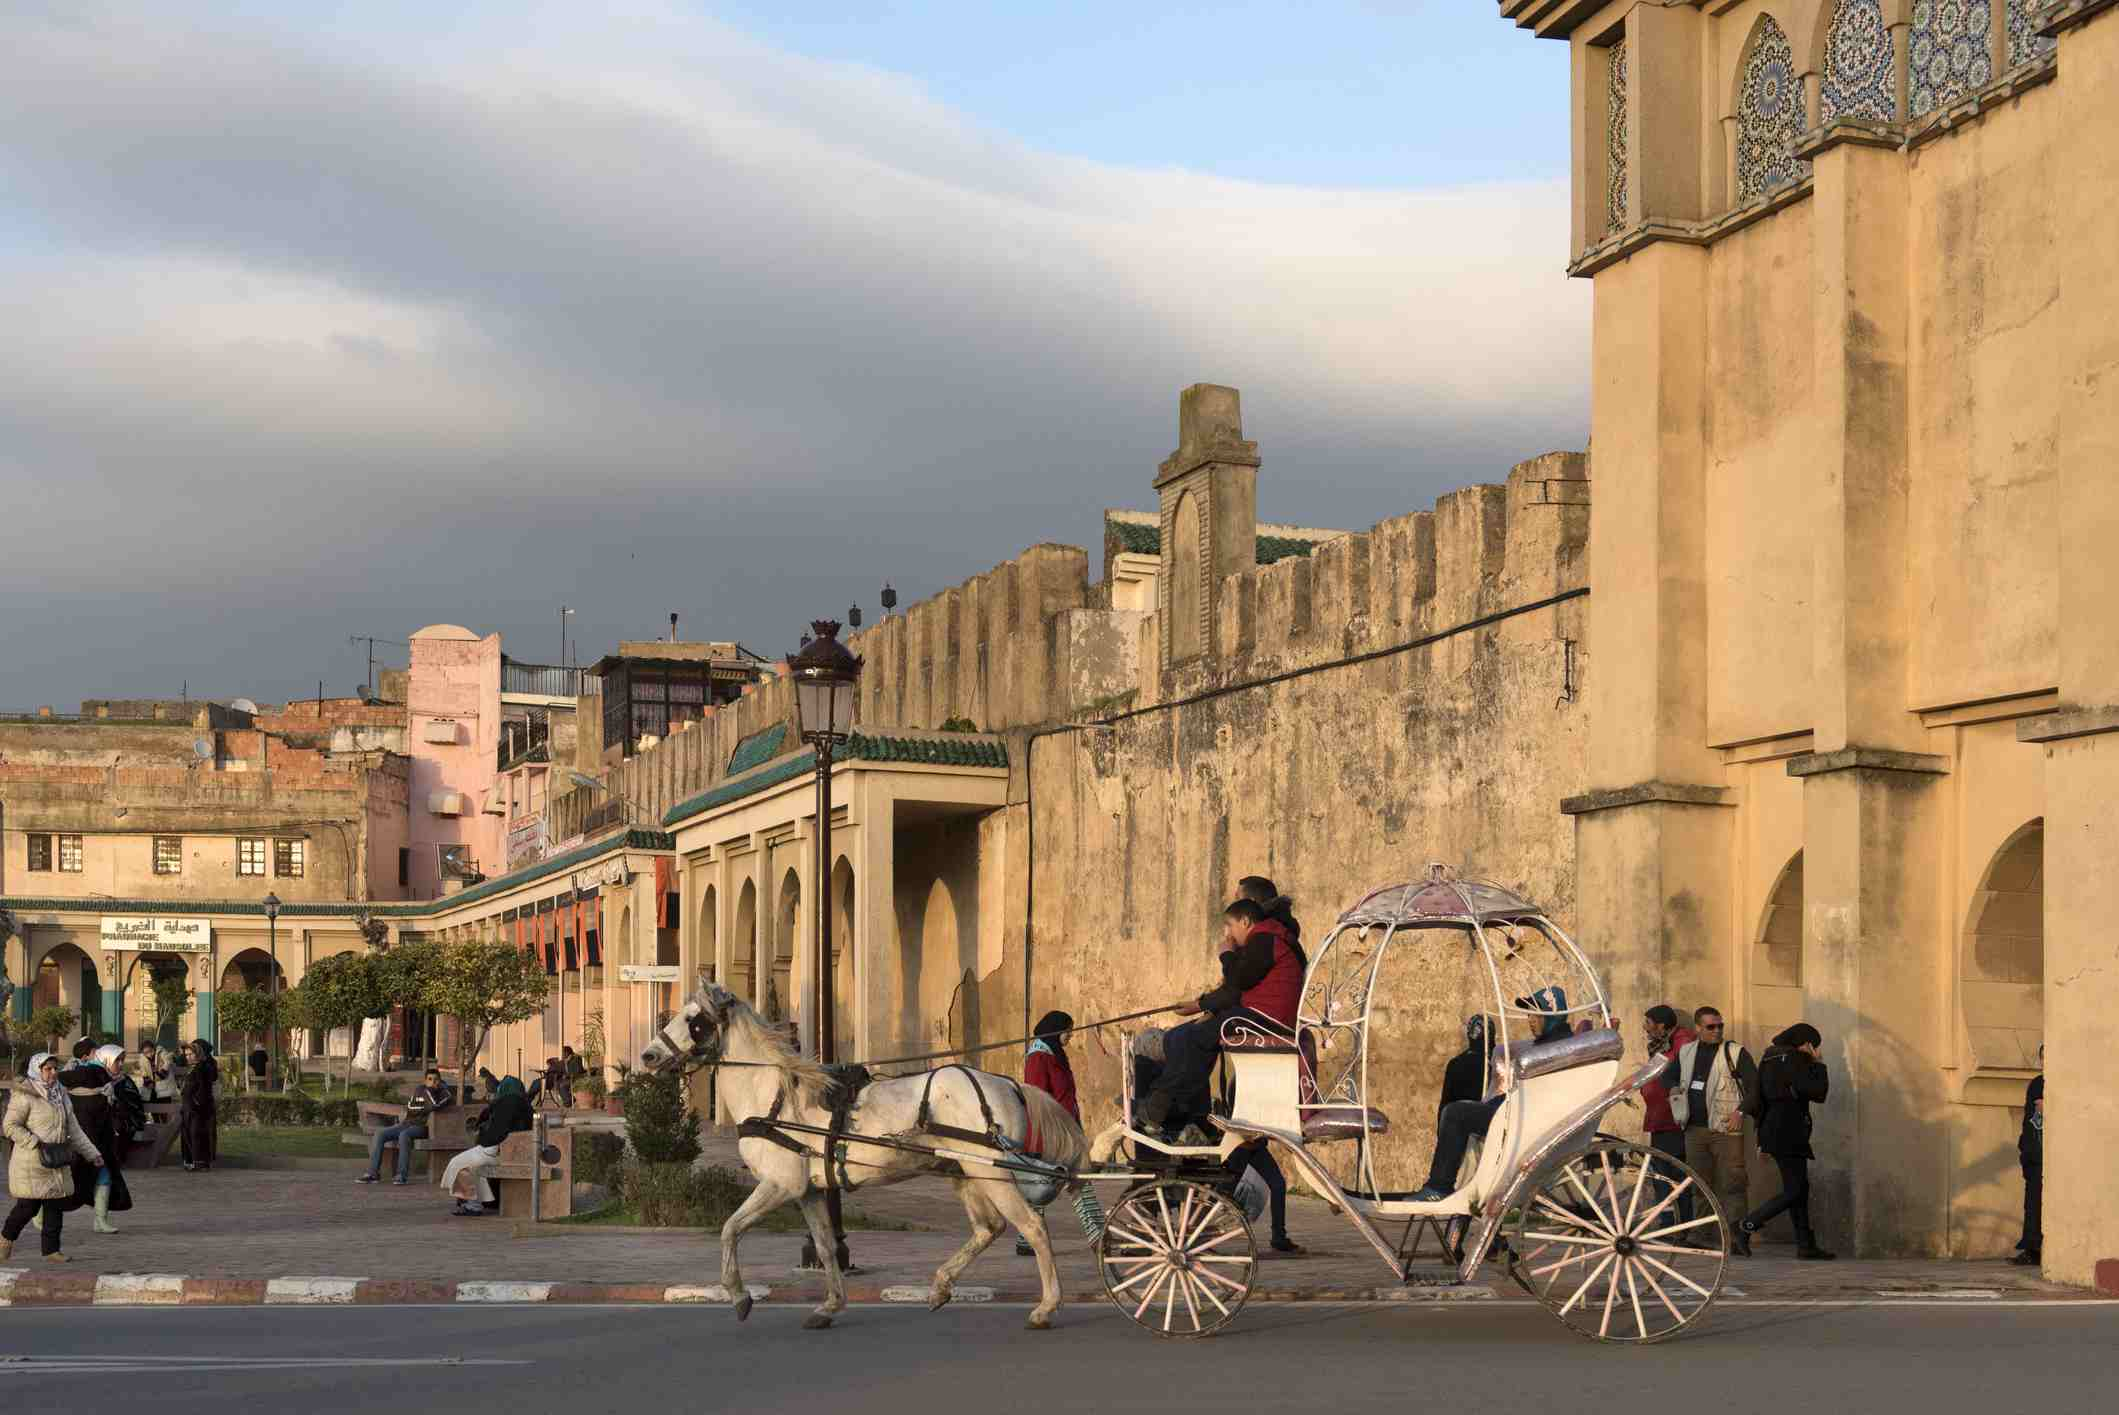 A horse-drawn carriage, or caleche in Meknes